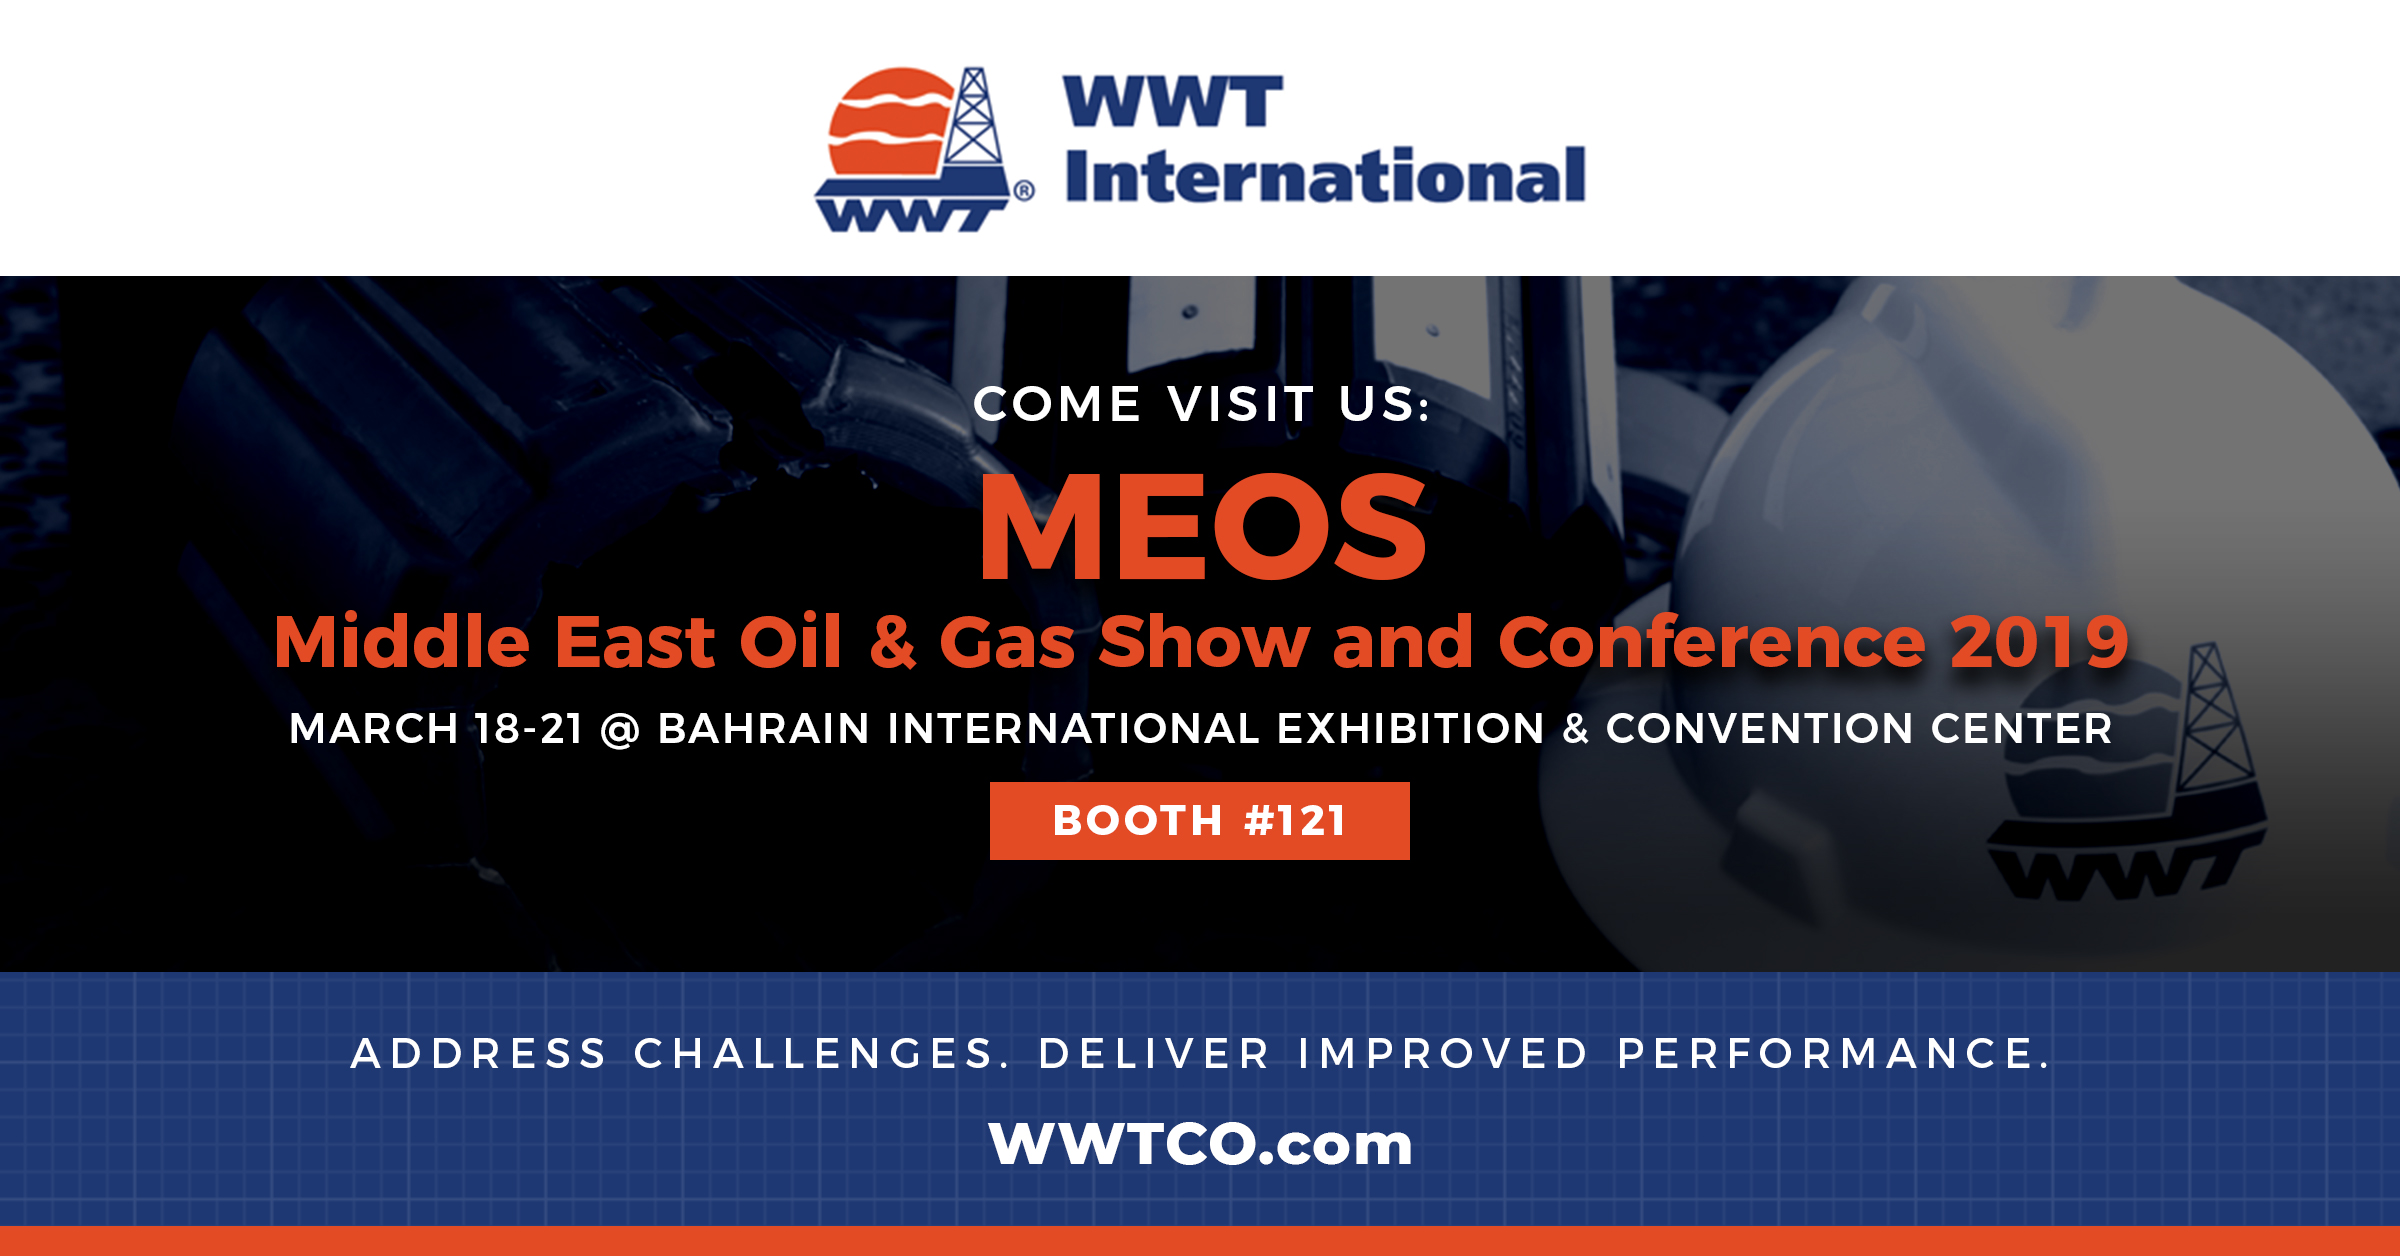 ONE WEEK AWAY: WWT International Joining Middle East Oil & Gas Show and Conference 2019